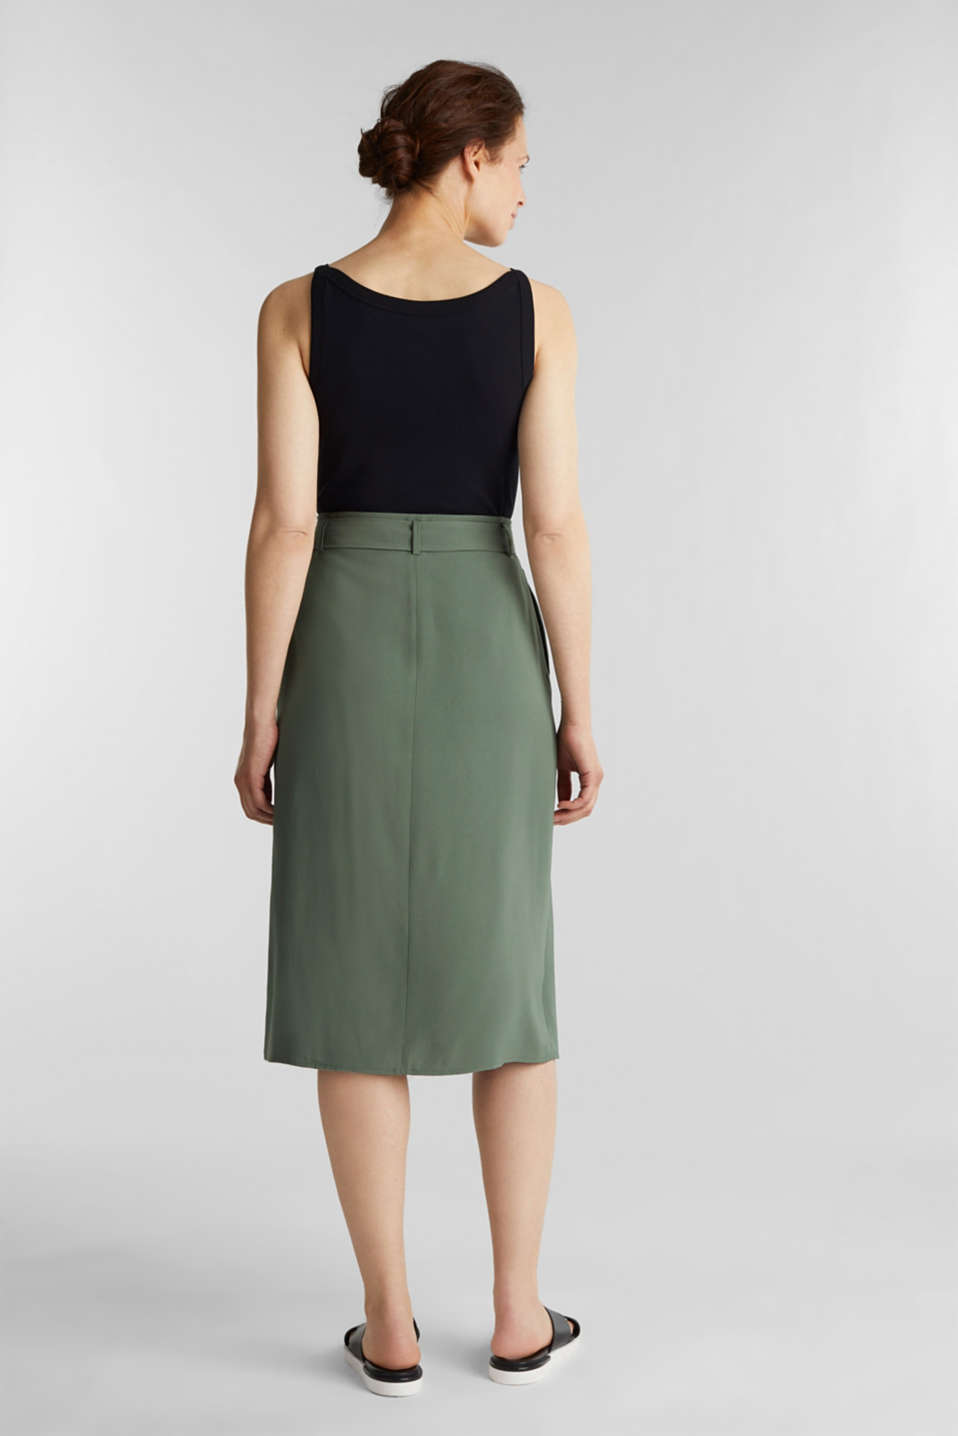 Midi skirt with a belt and a button placket, KHAKI GREEN, detail image number 3